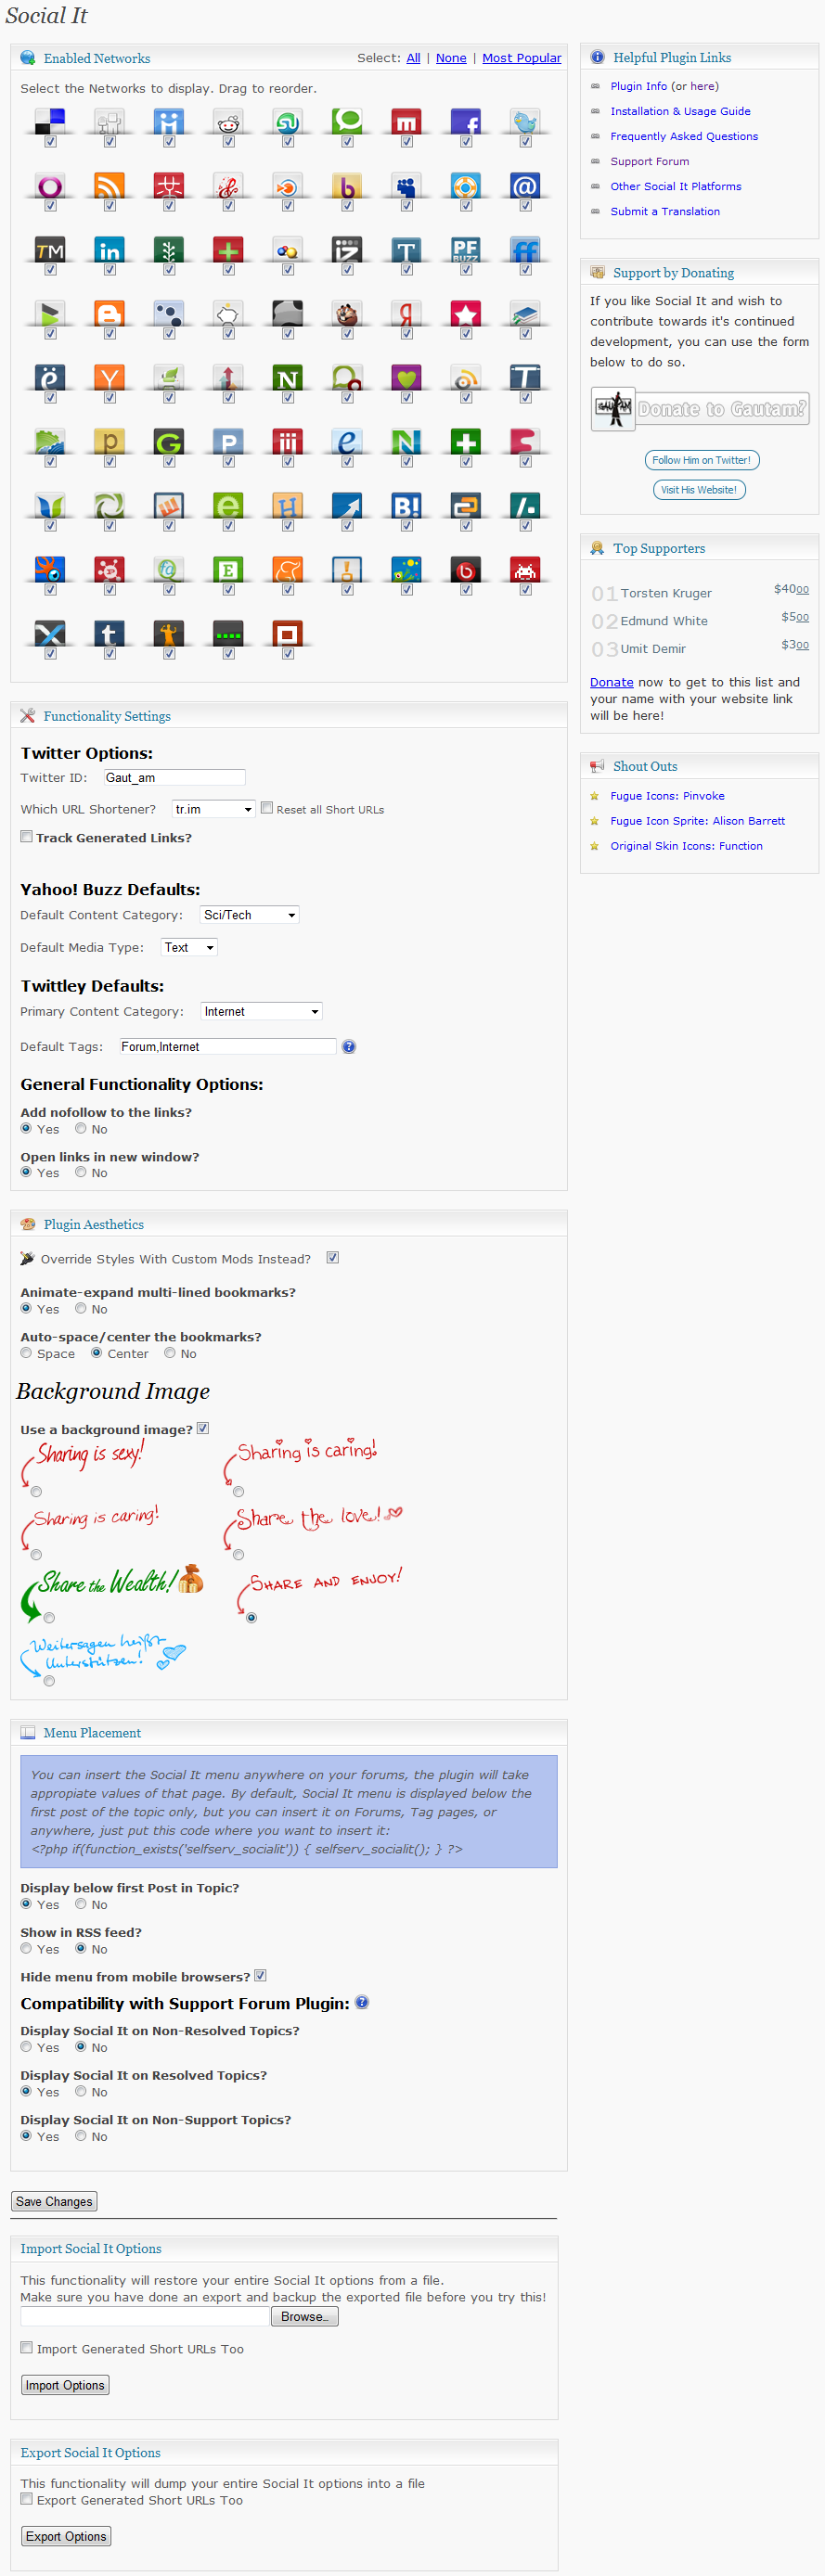 Screenshot of the settings page in the admin panel